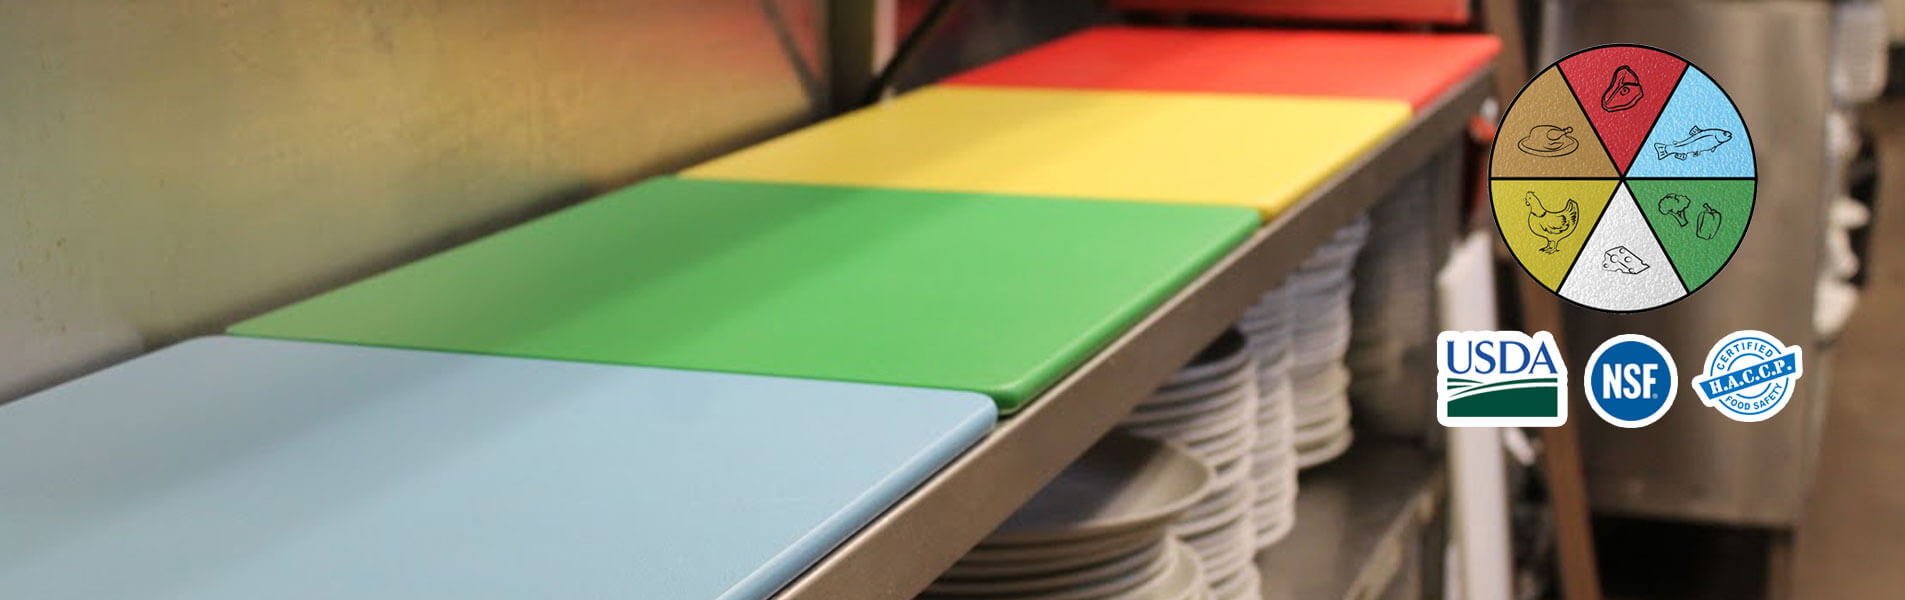 color cutting boards, plastic cutting board, cutting board company